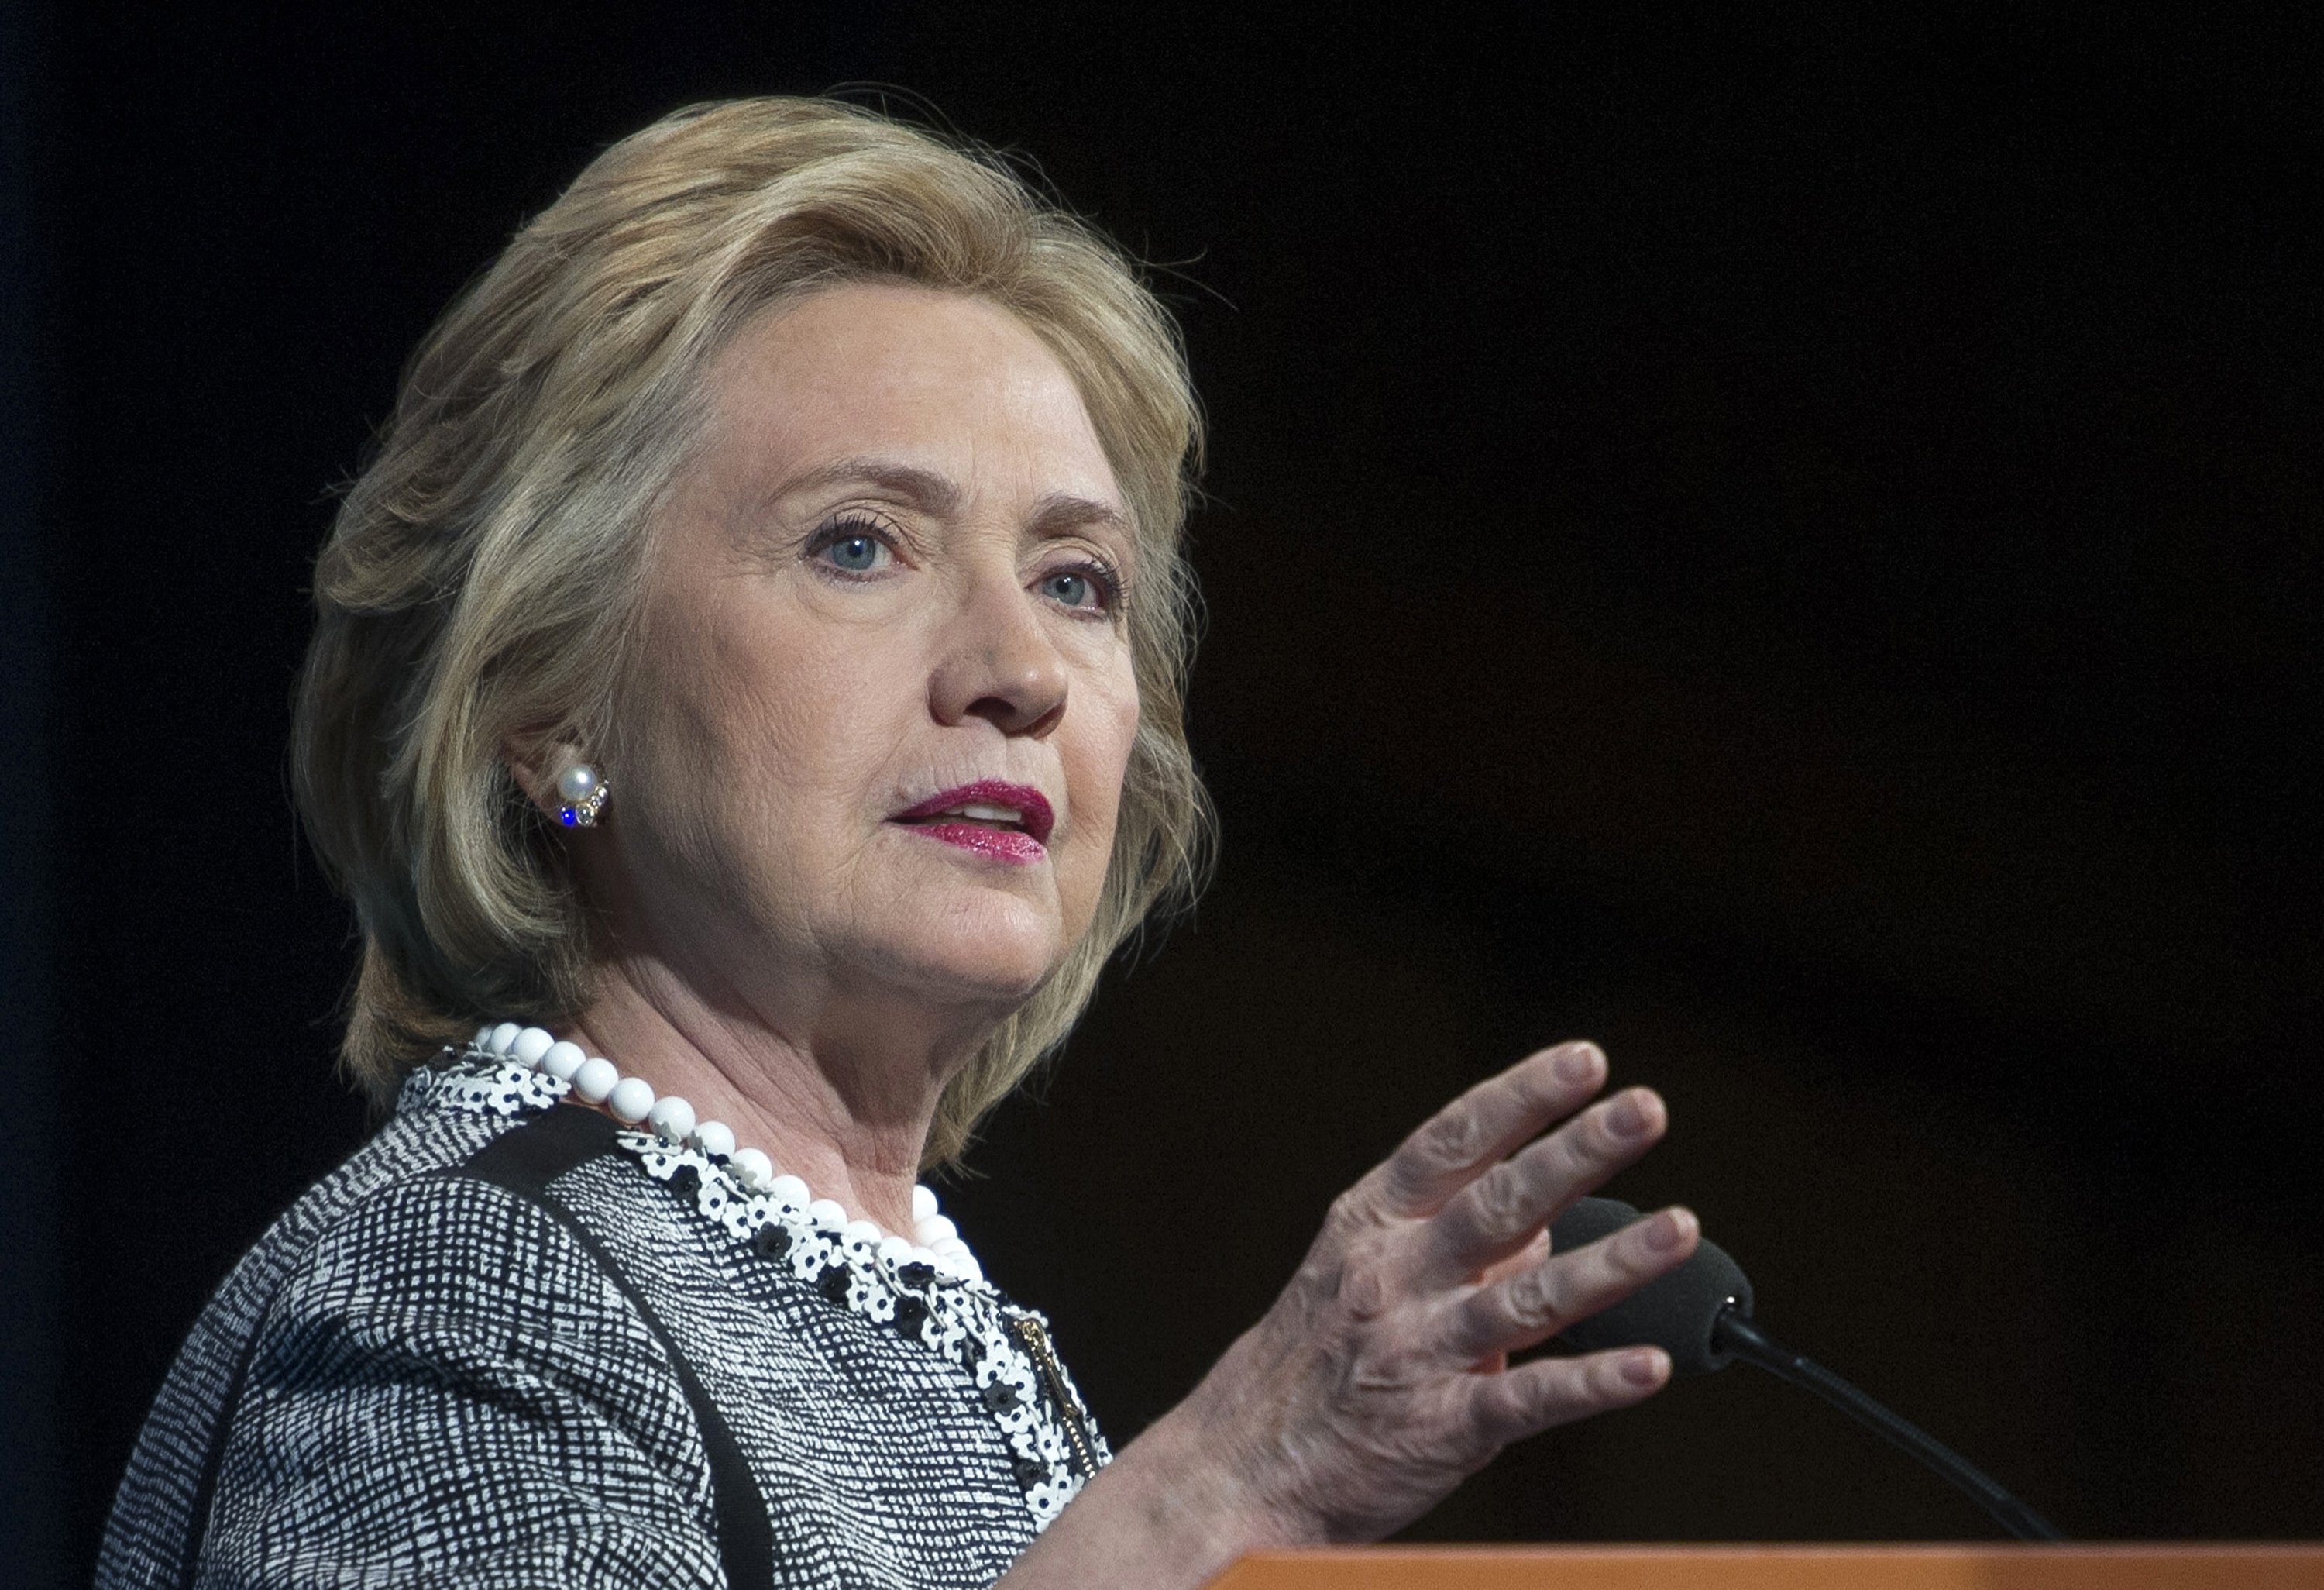 Former Secretary of State Hillary Rodham Clinton speaking in Washington on May 14, 2014.